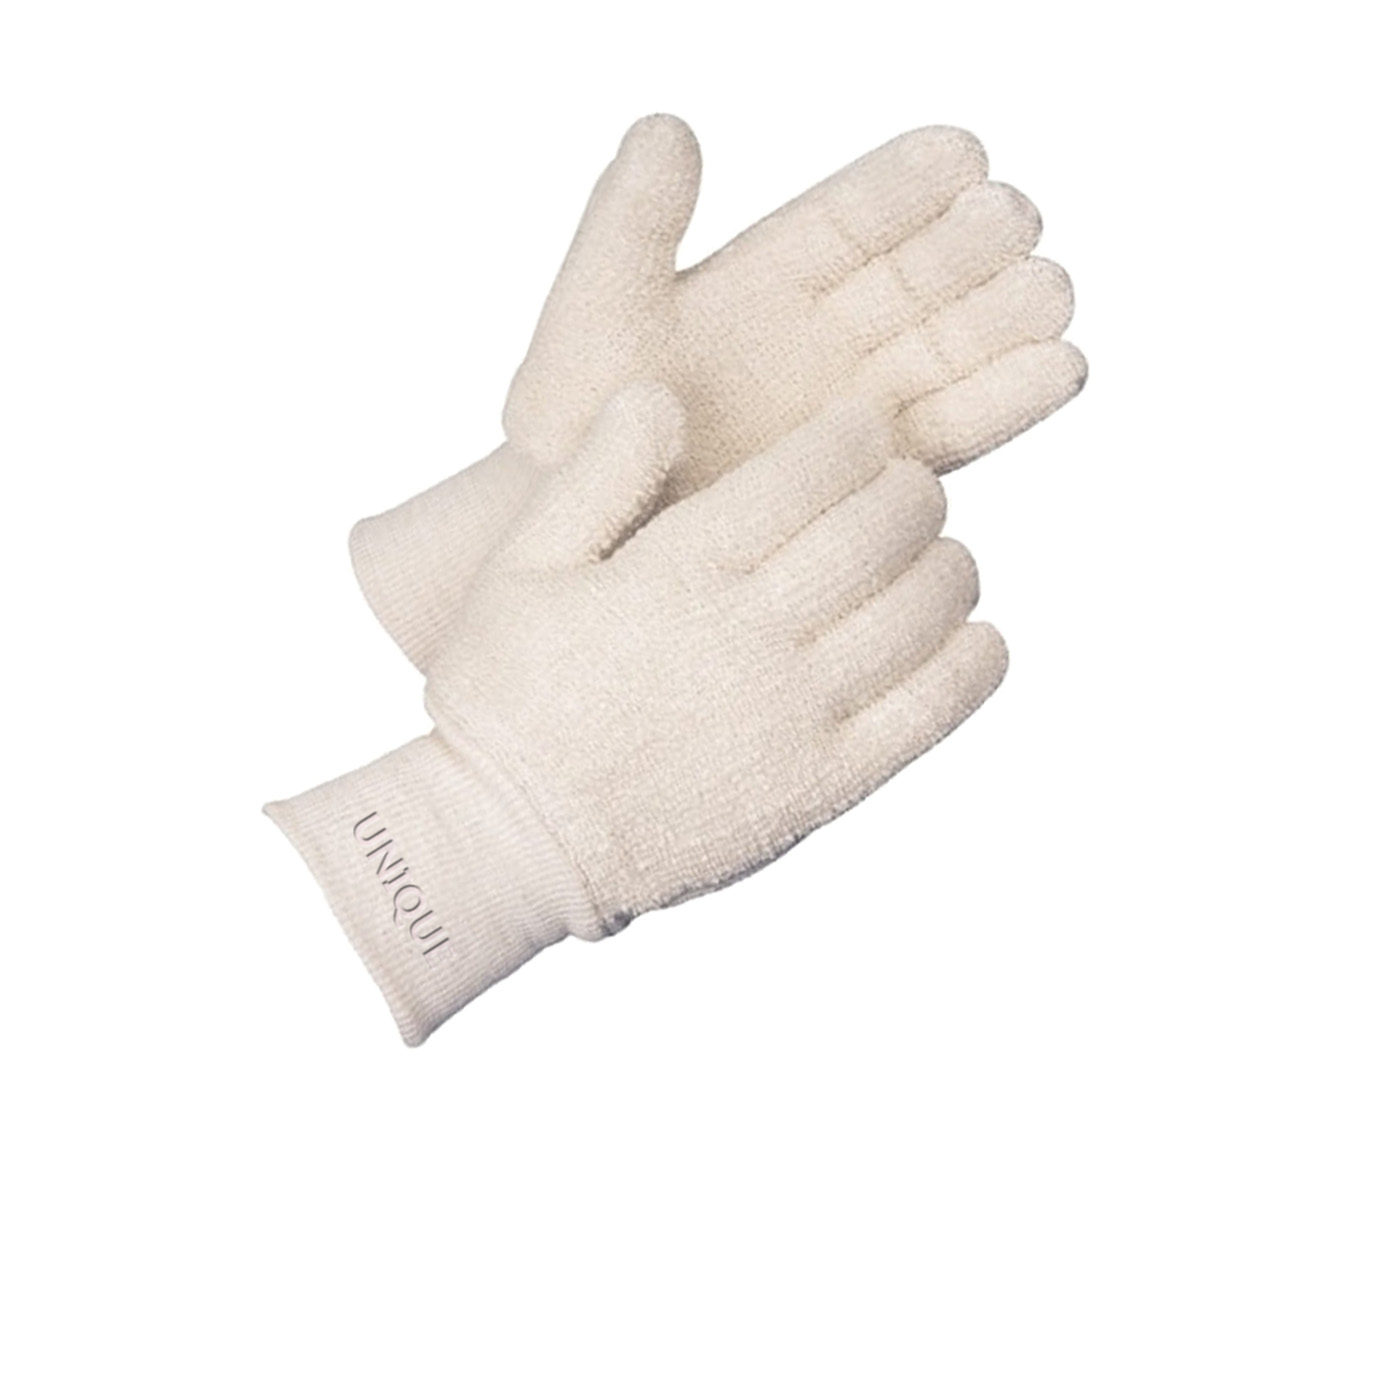 Terry cloth cotth gloves